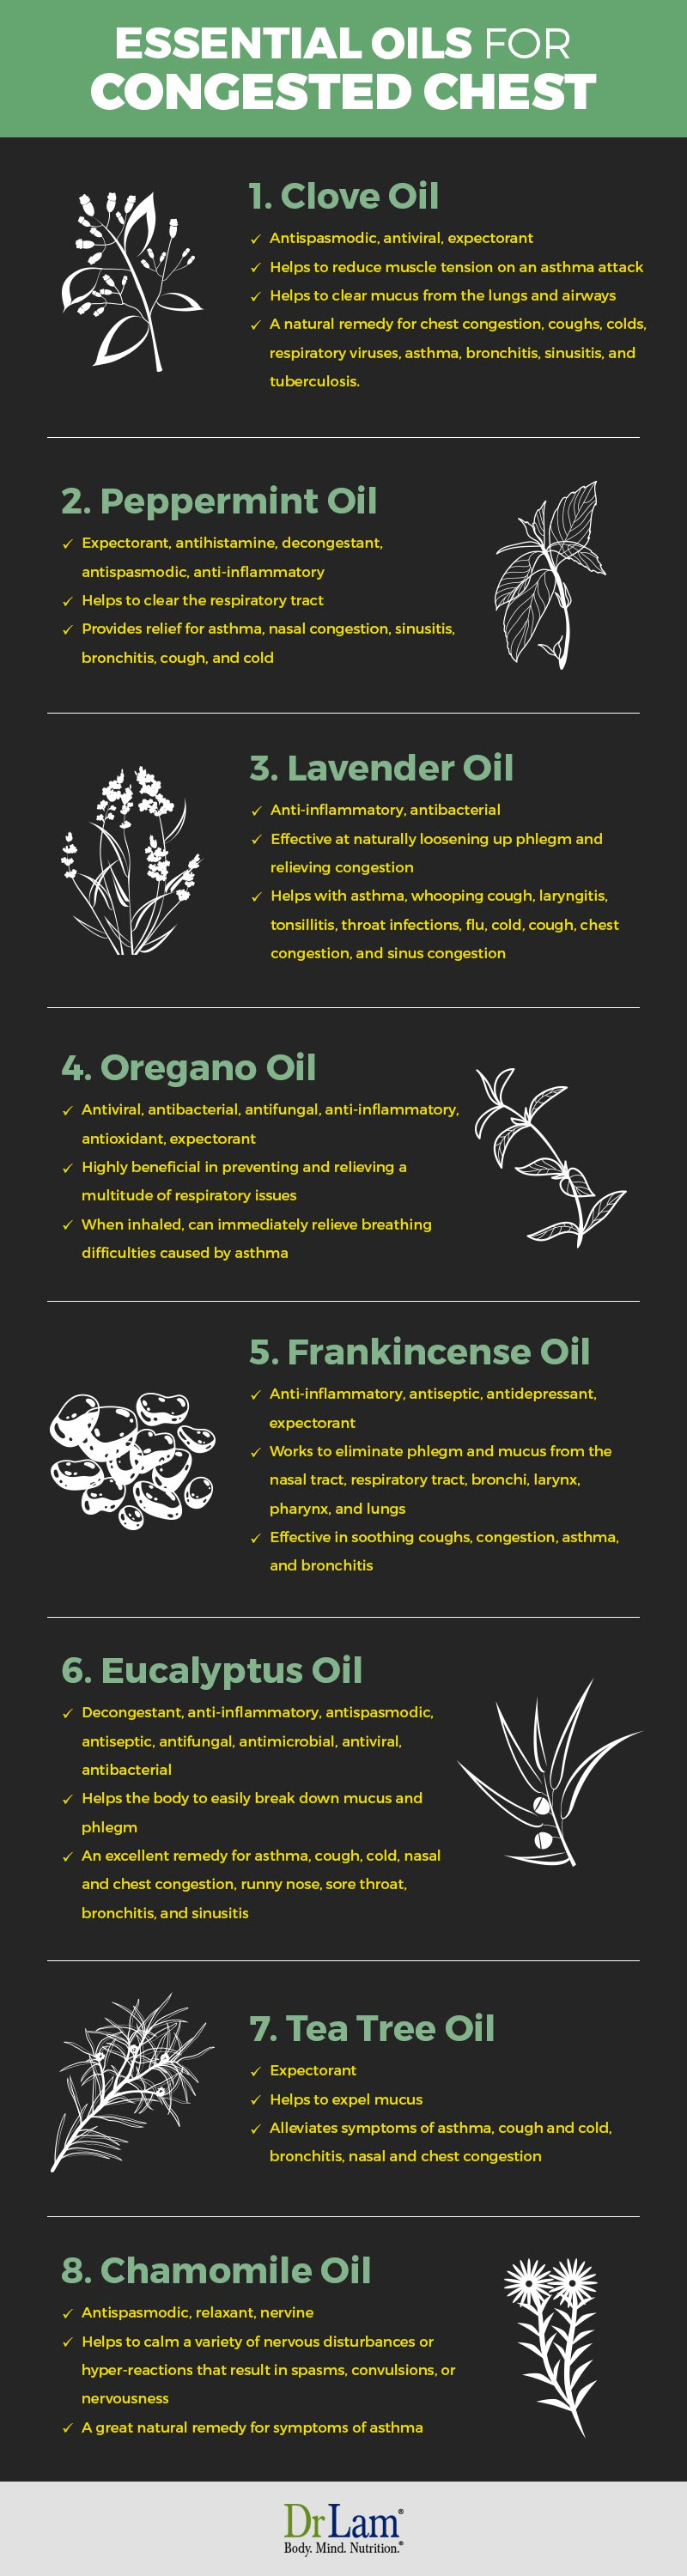 Check out this easy to understand infographic about use of essential oils for congested chest